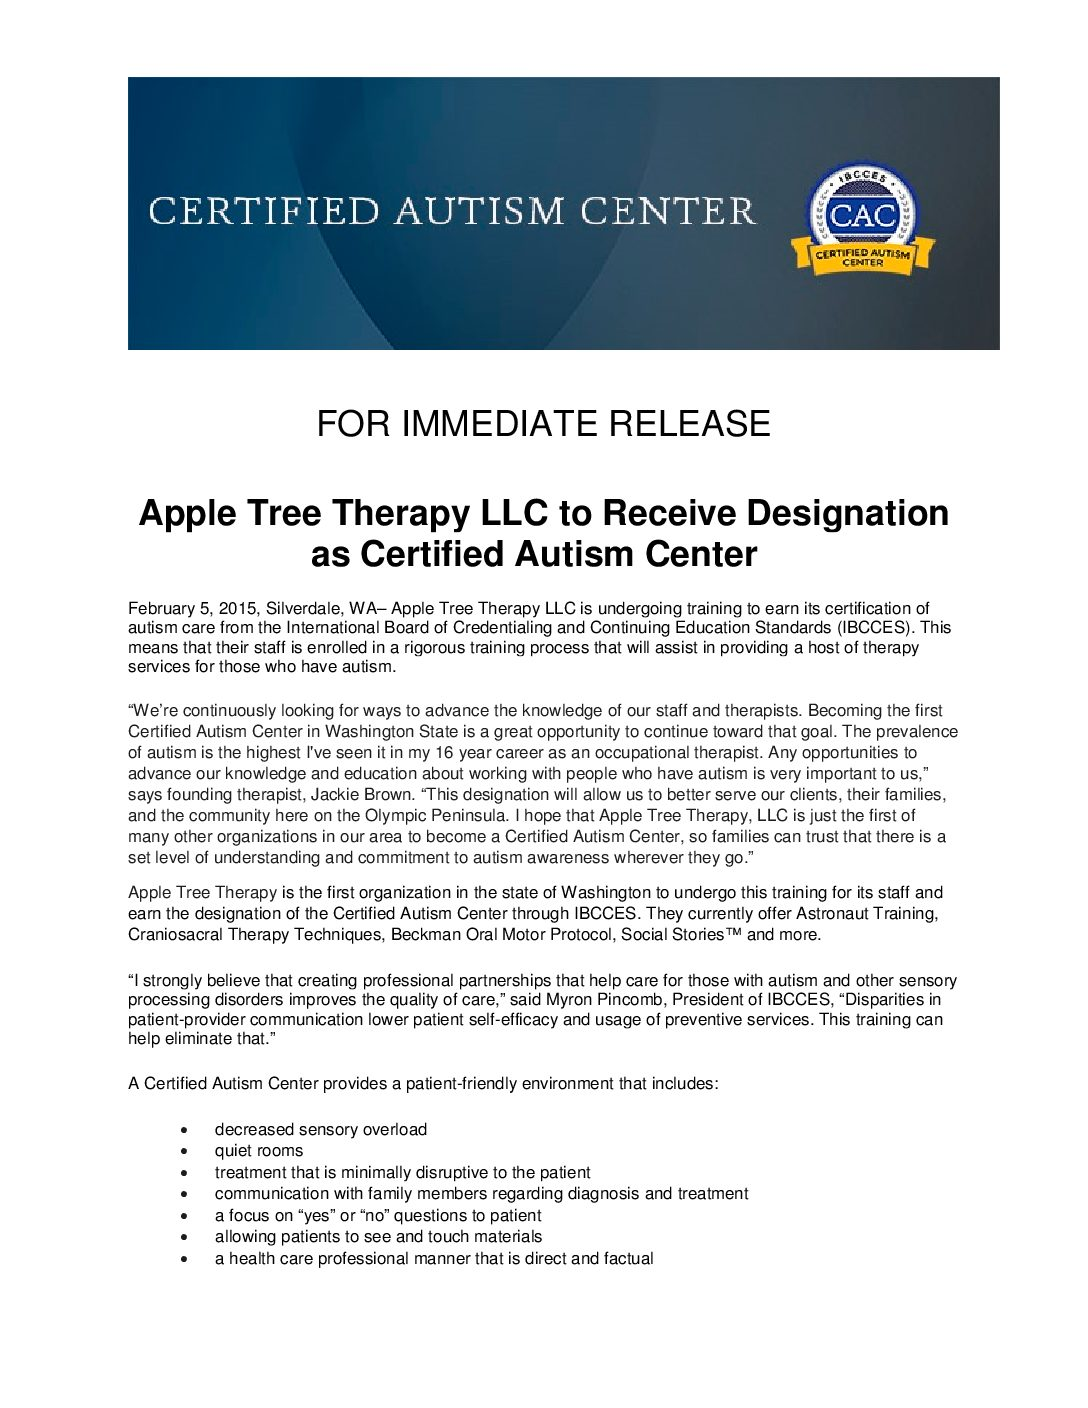 Pr 020515 Apple Tree Therapy Llc To Receive Designation As